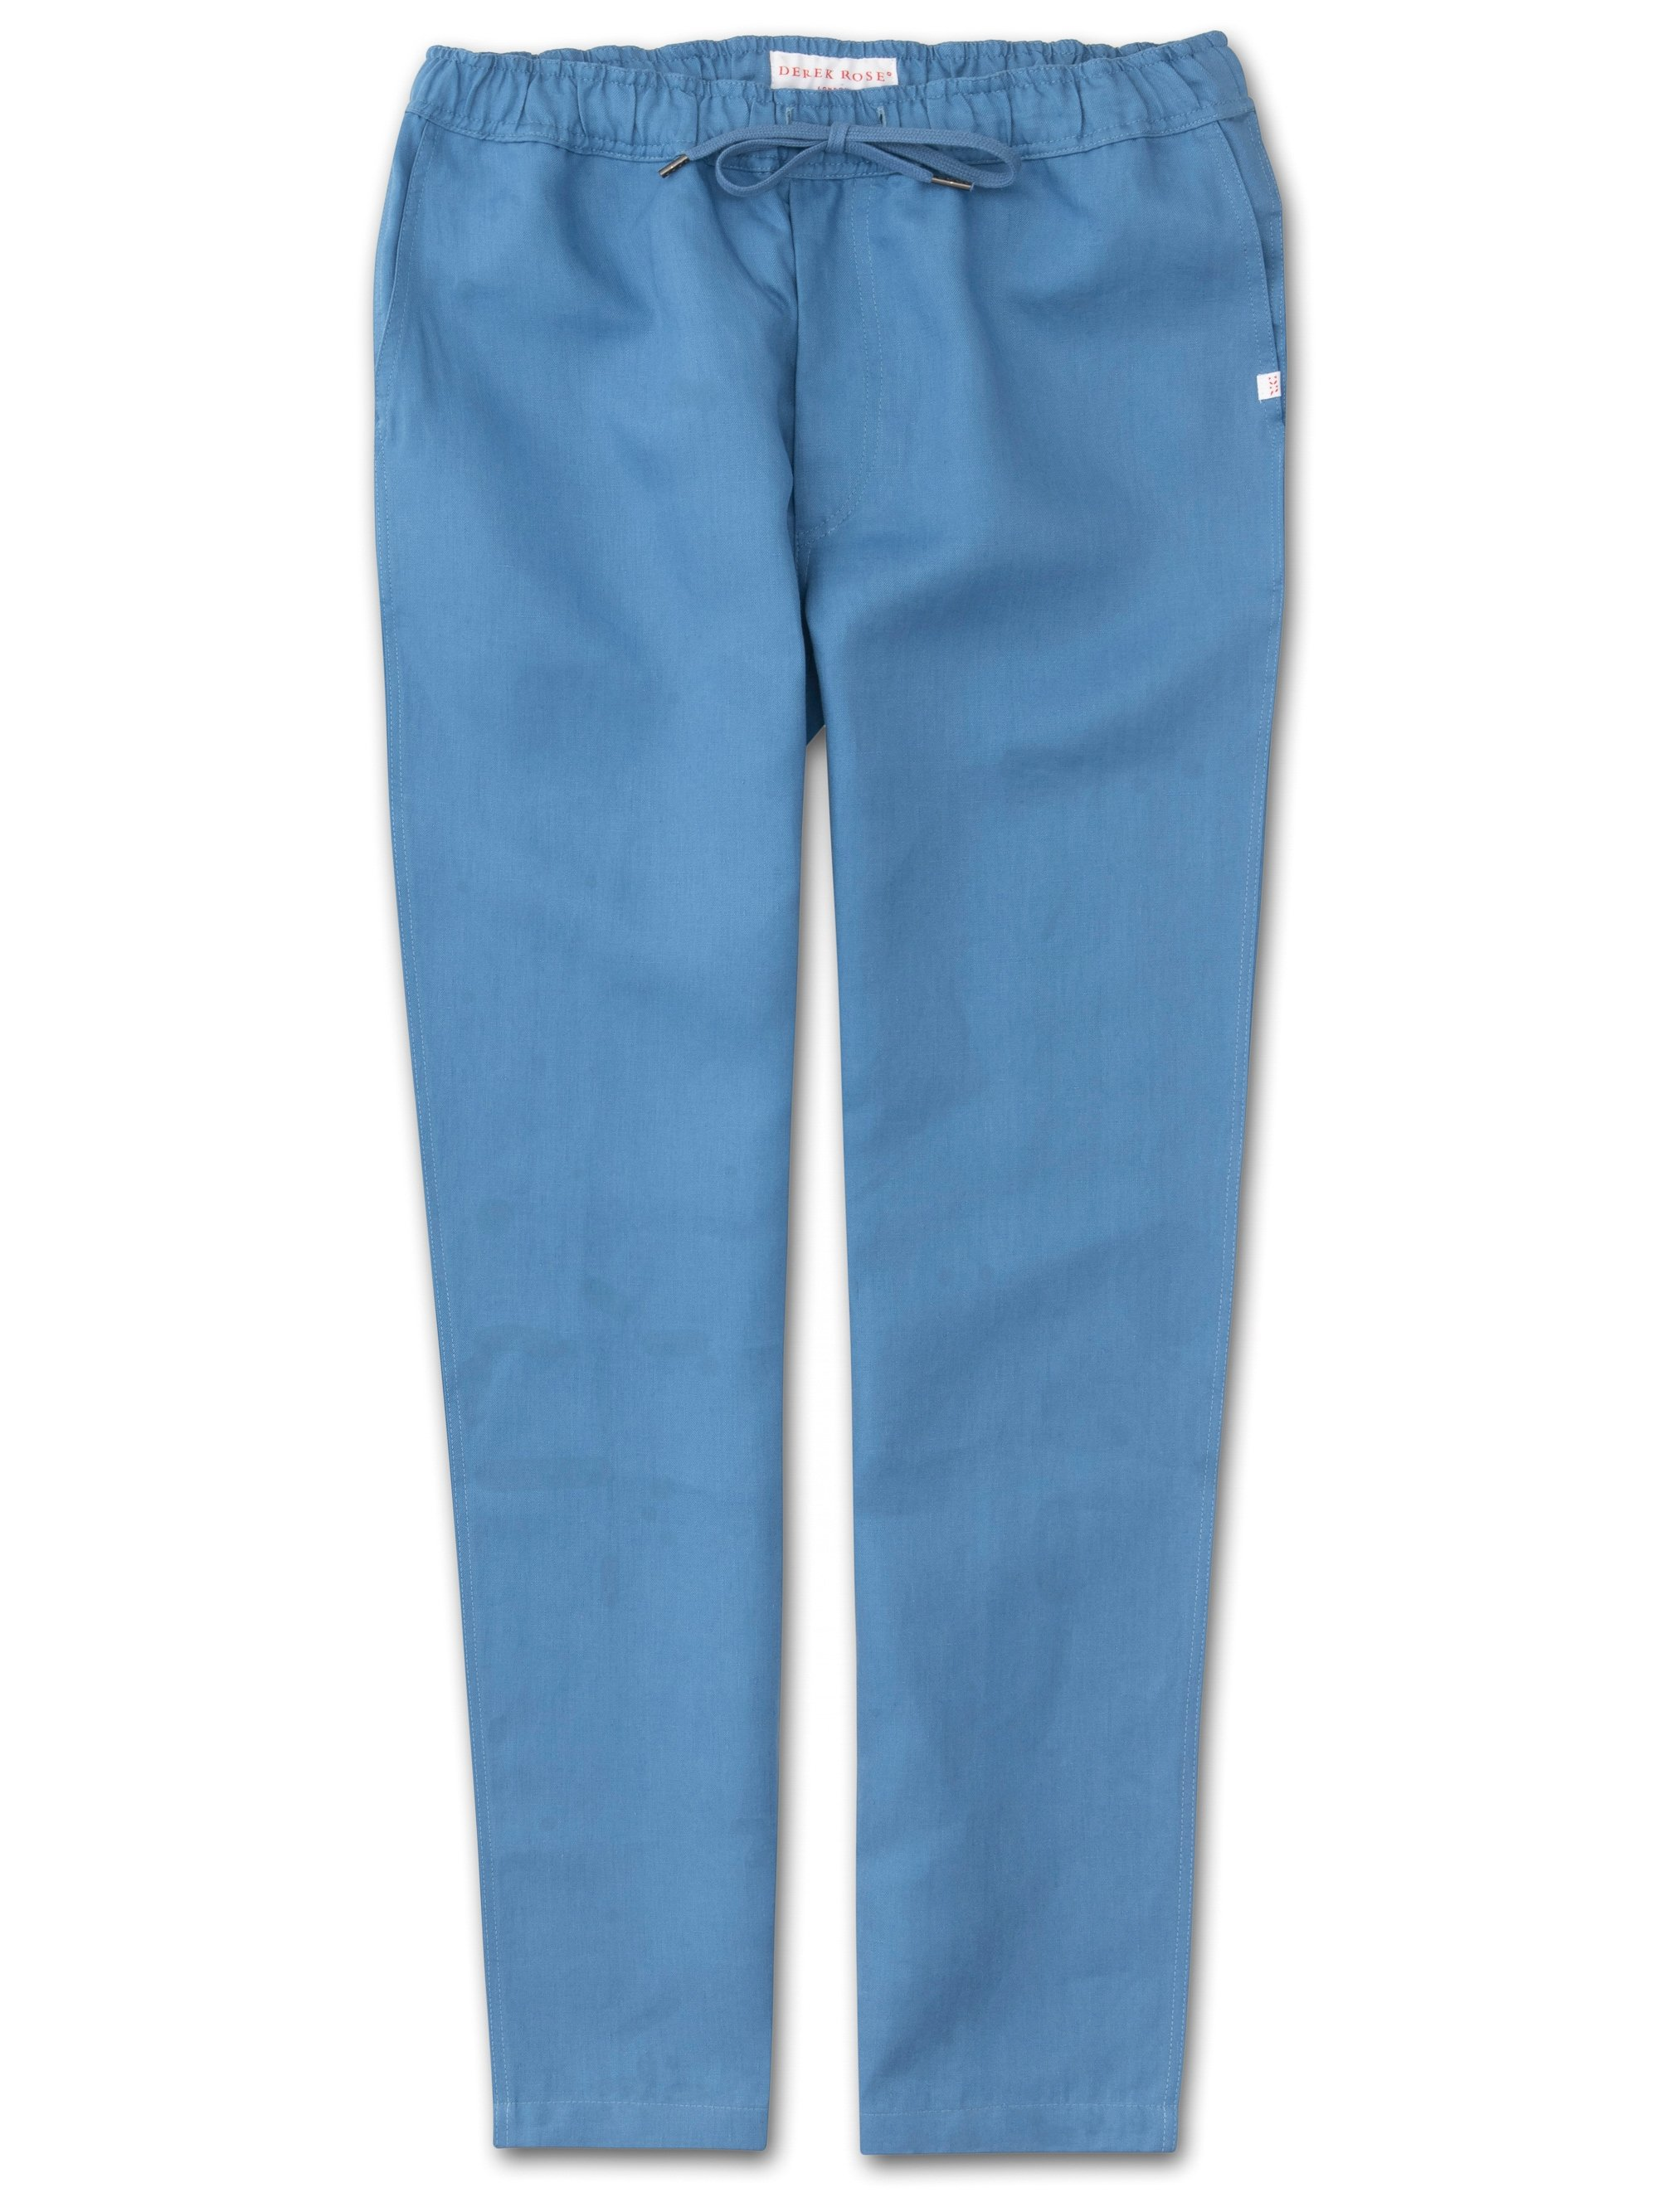 Men's Linen Trousers Sydney Linen Blue